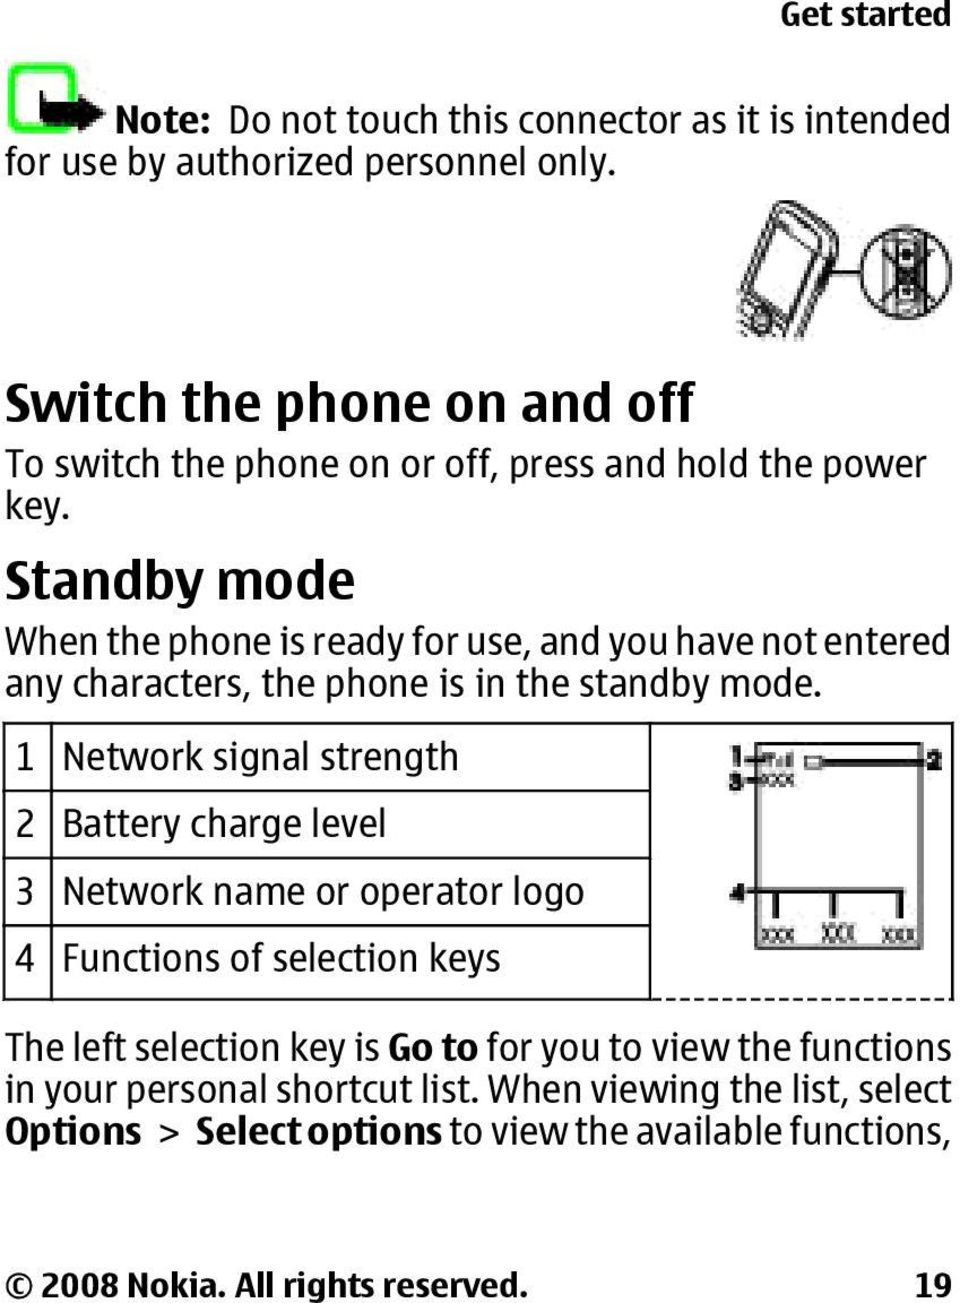 Standby mode When the phone is ready for use, and you have not entered any characters, the phone is in the standby mode.